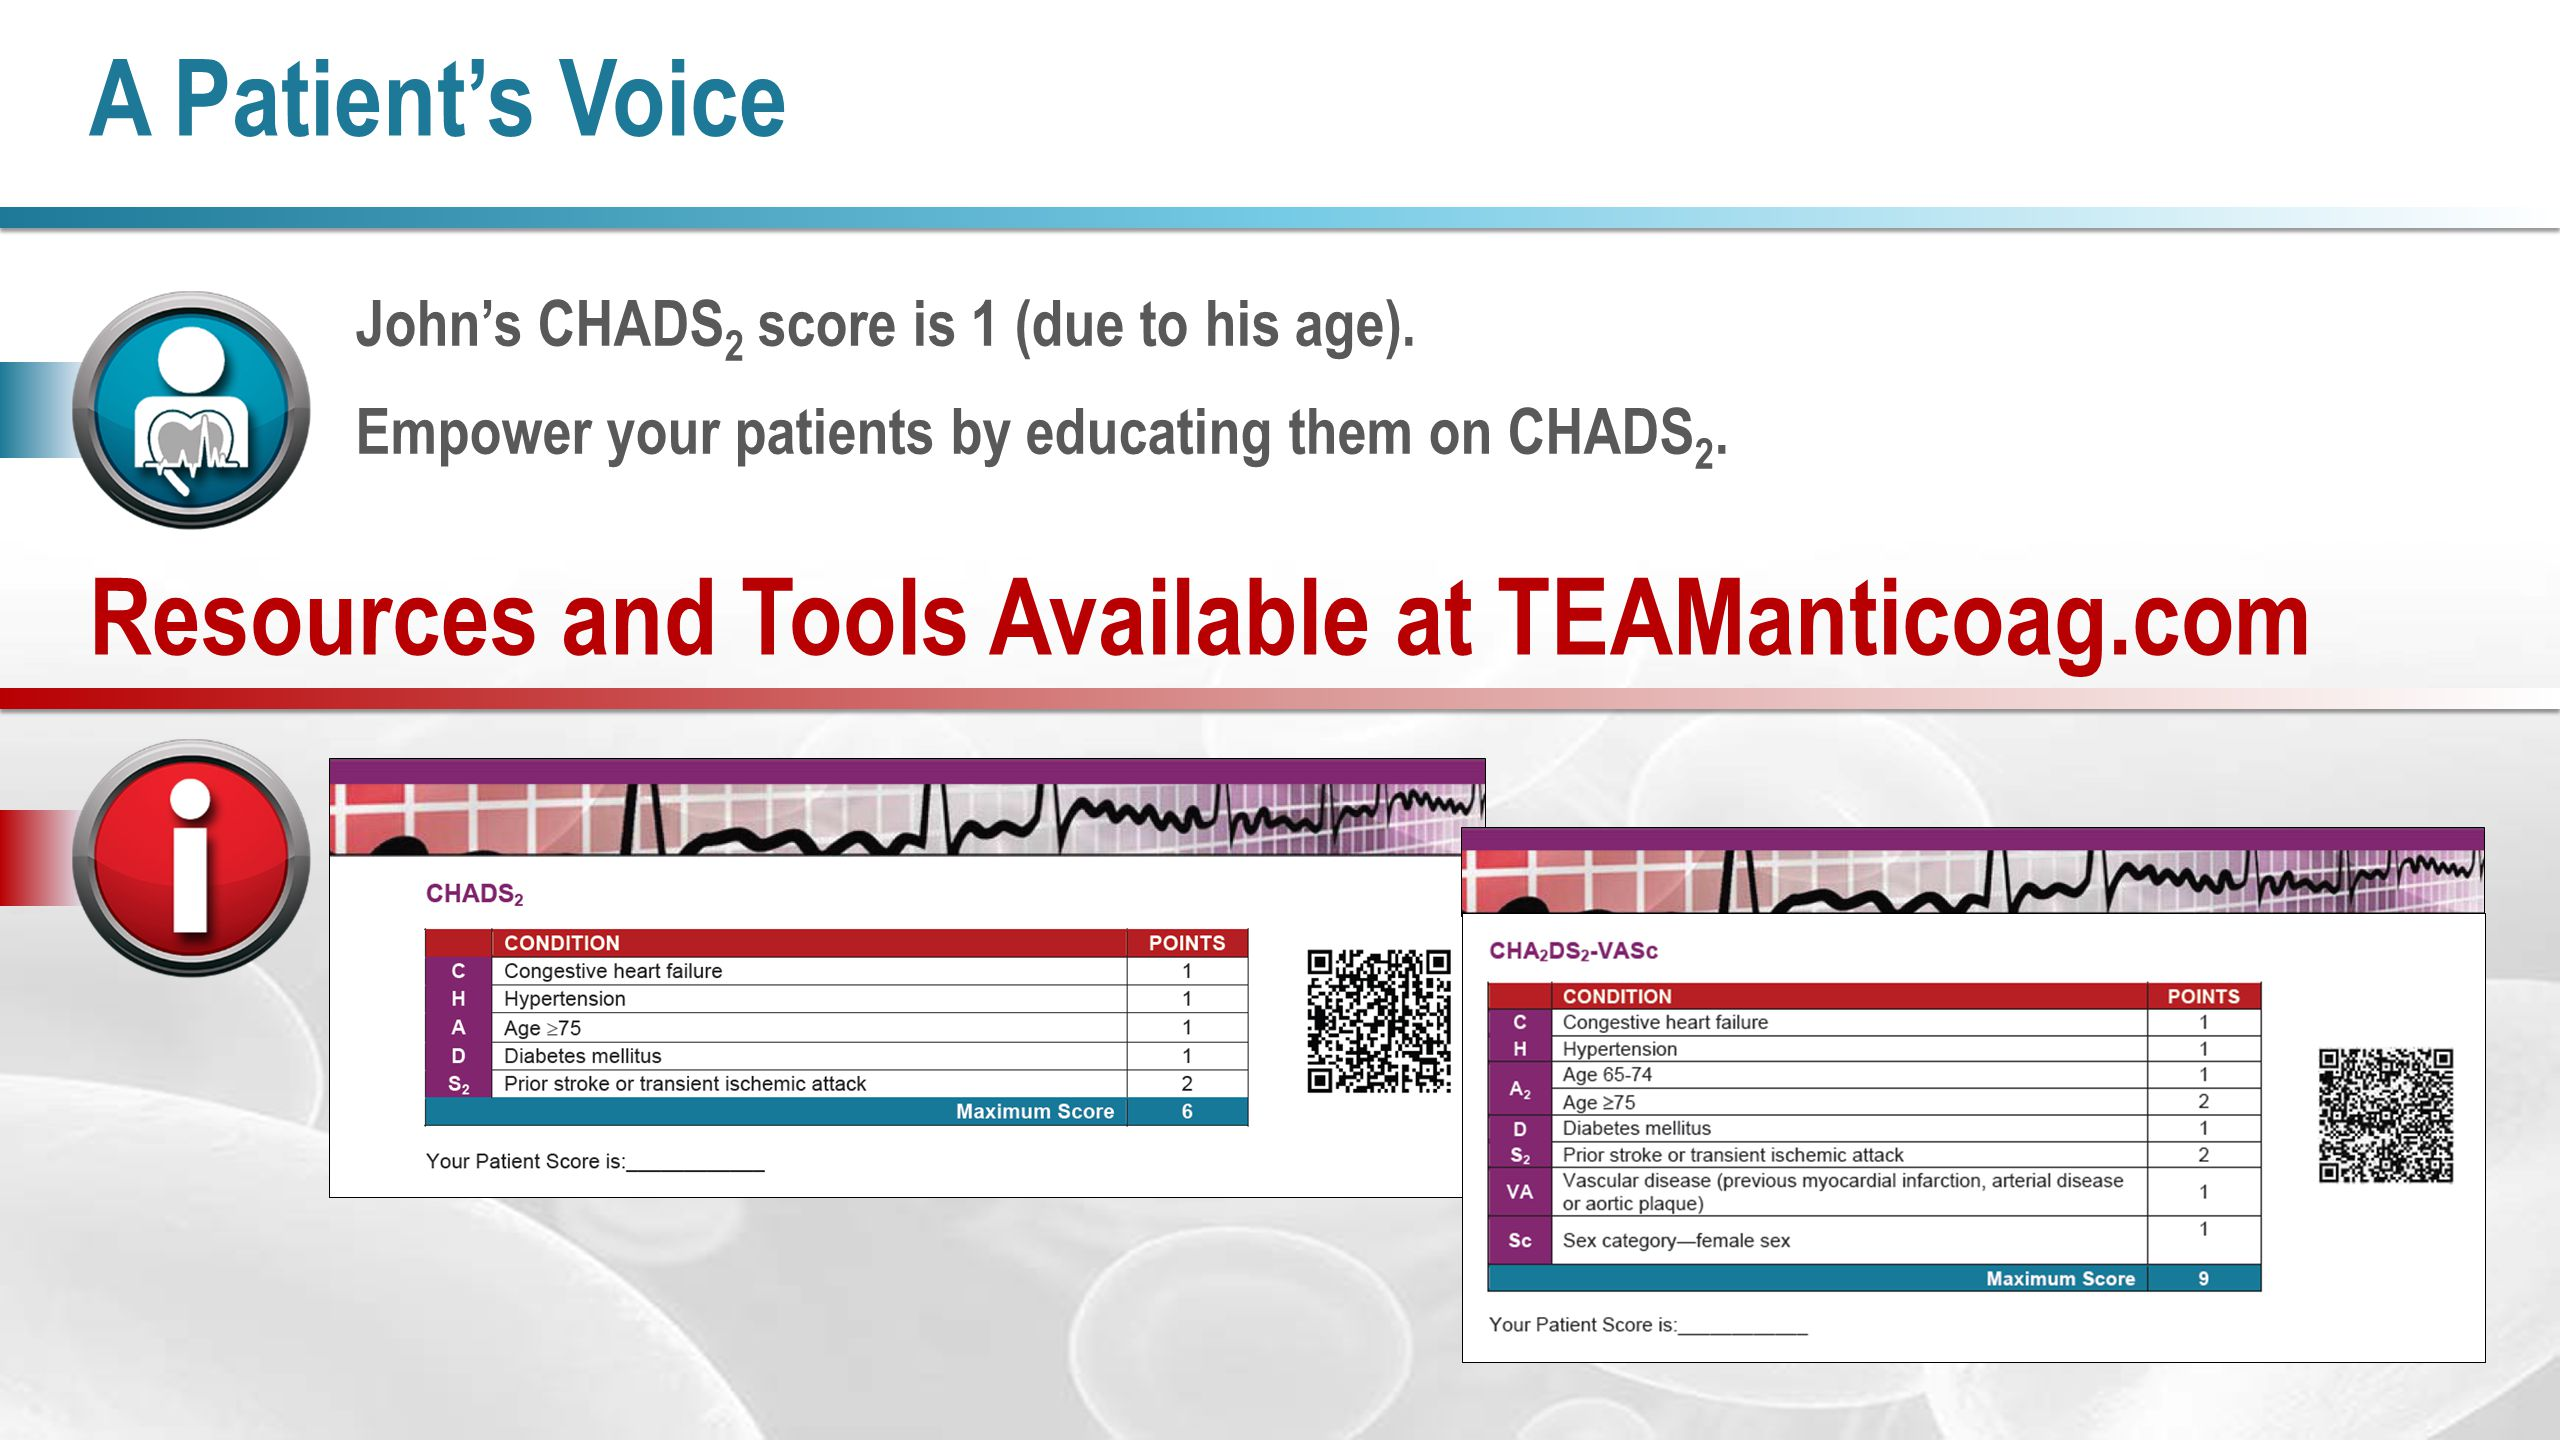 John's CHADS 2 score is 1 (due to his age). Empower your patients by educating them on CHADS 2.